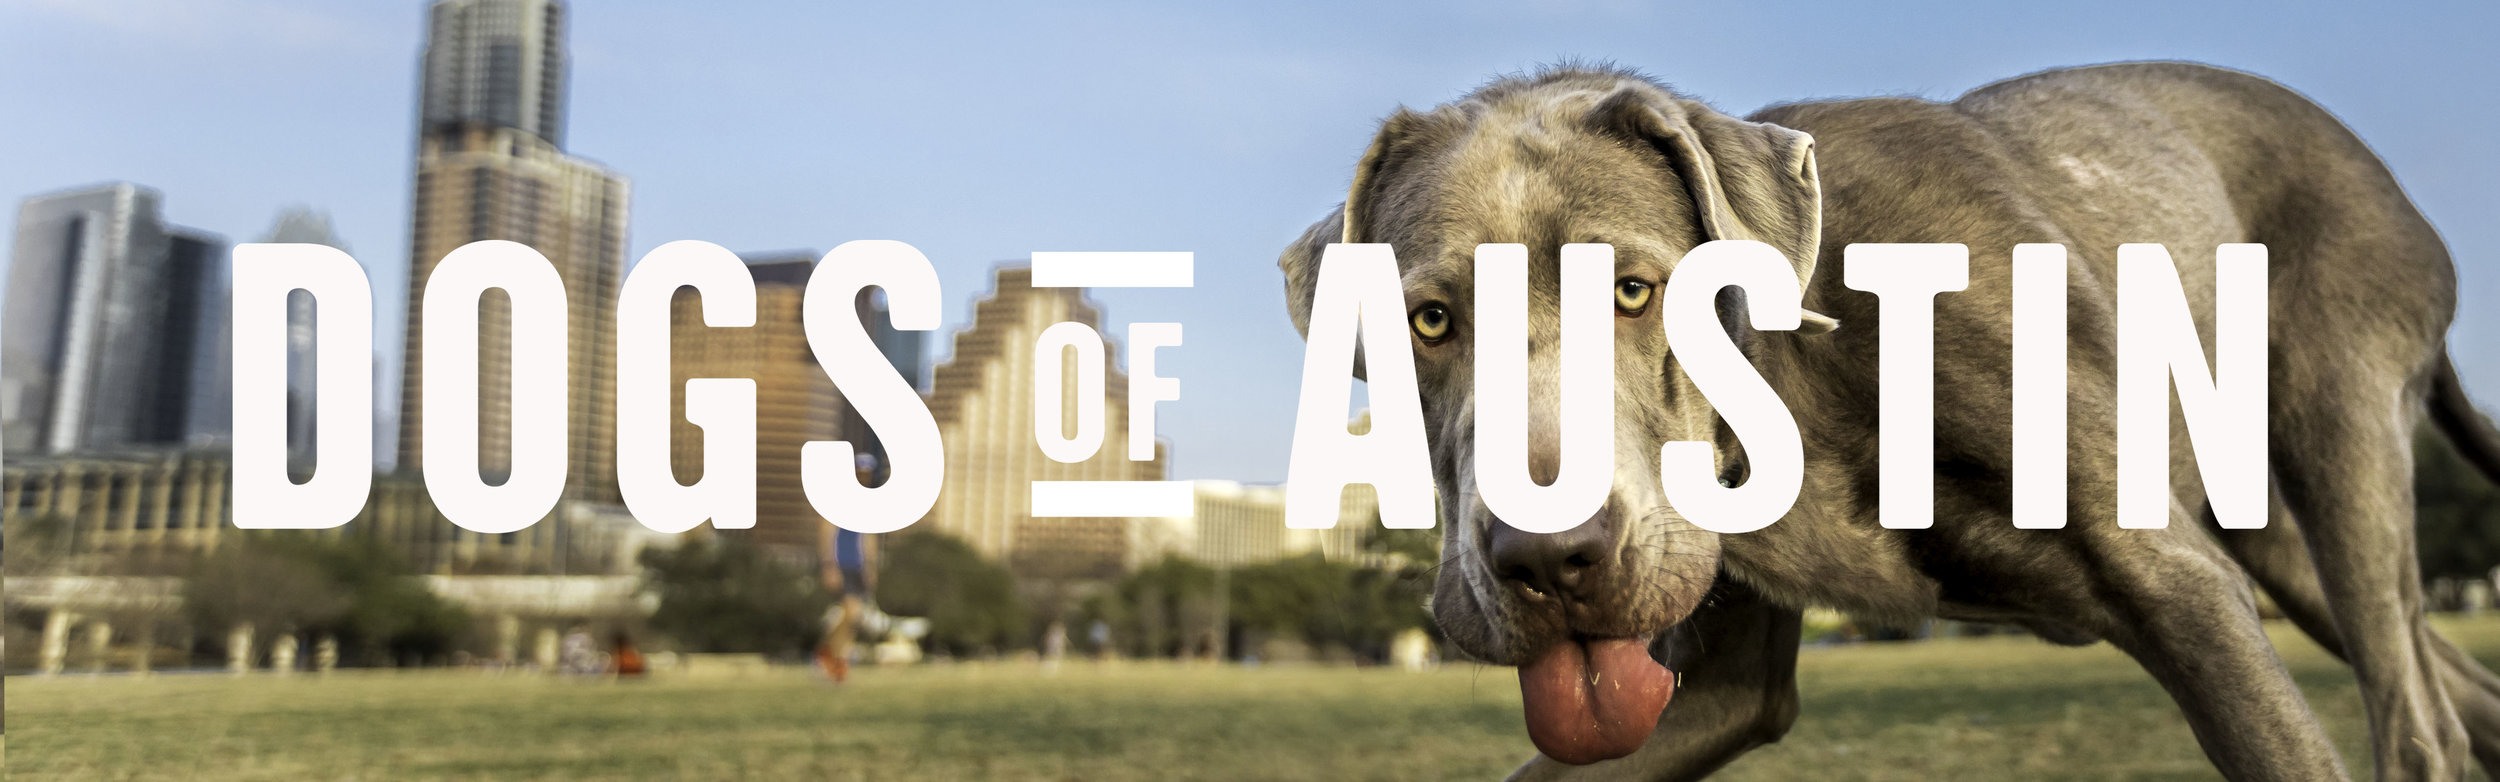 Dogs of Austin Cover web.jpg